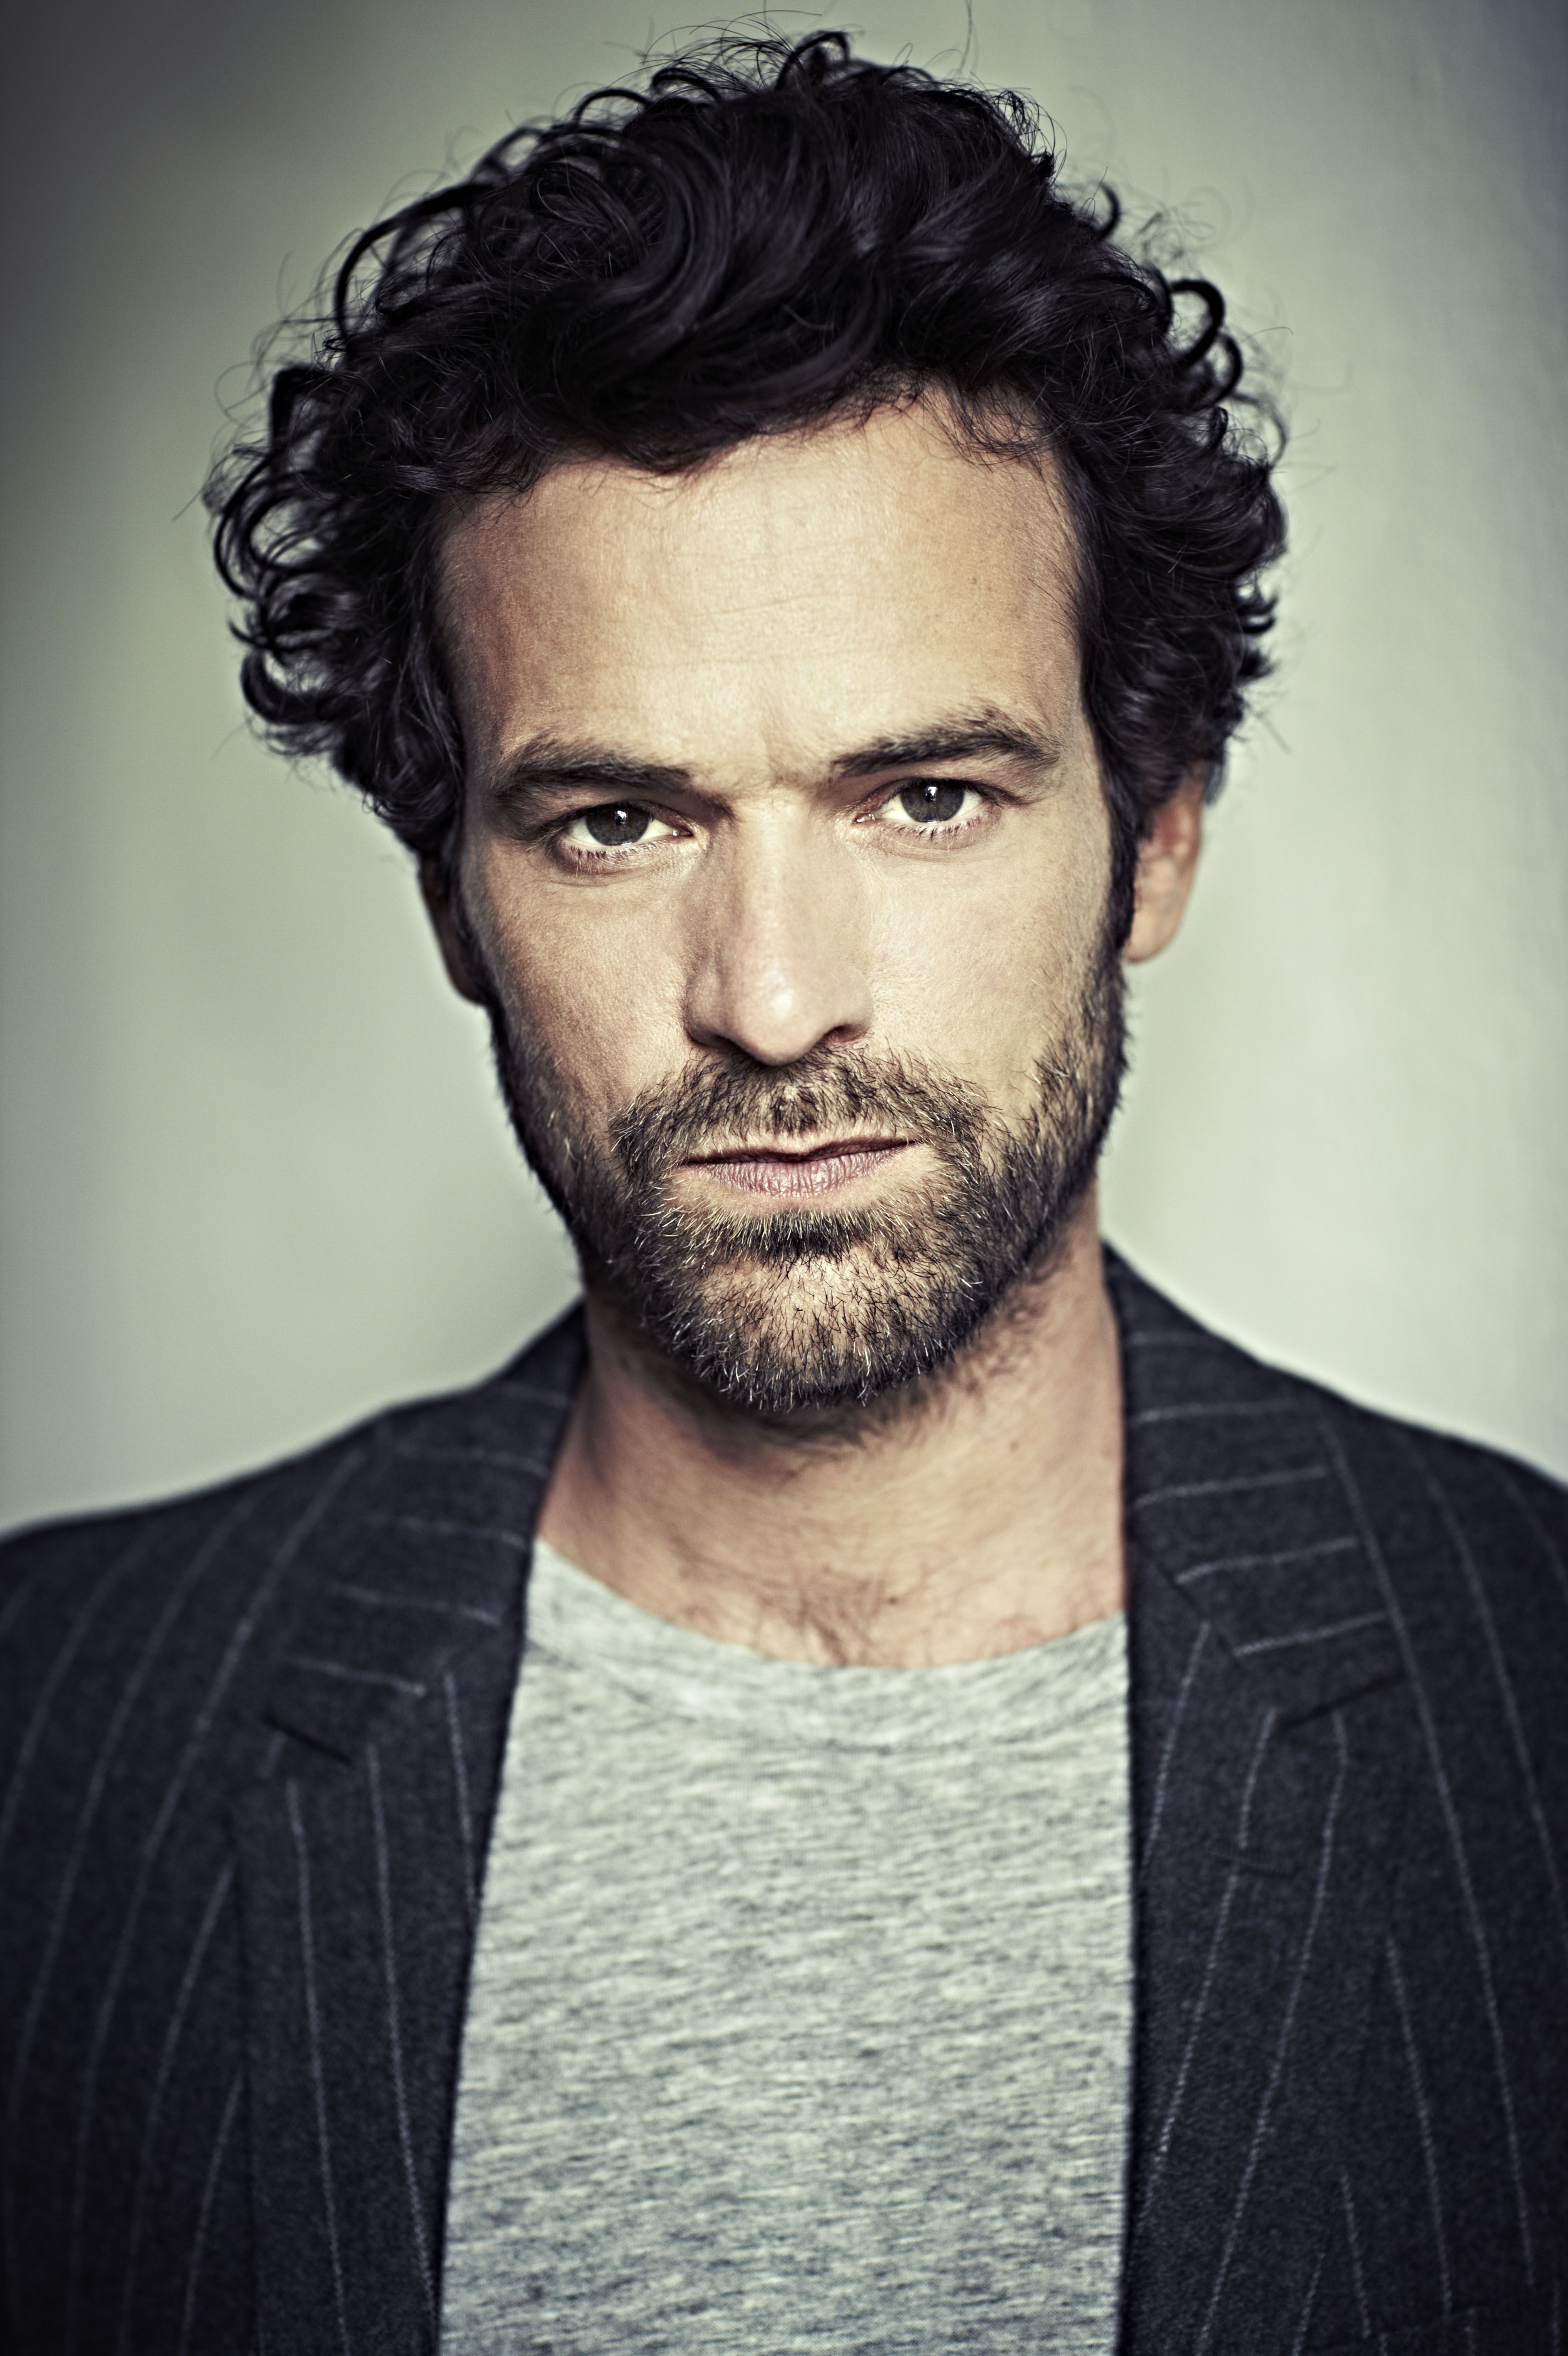 romain duris paris